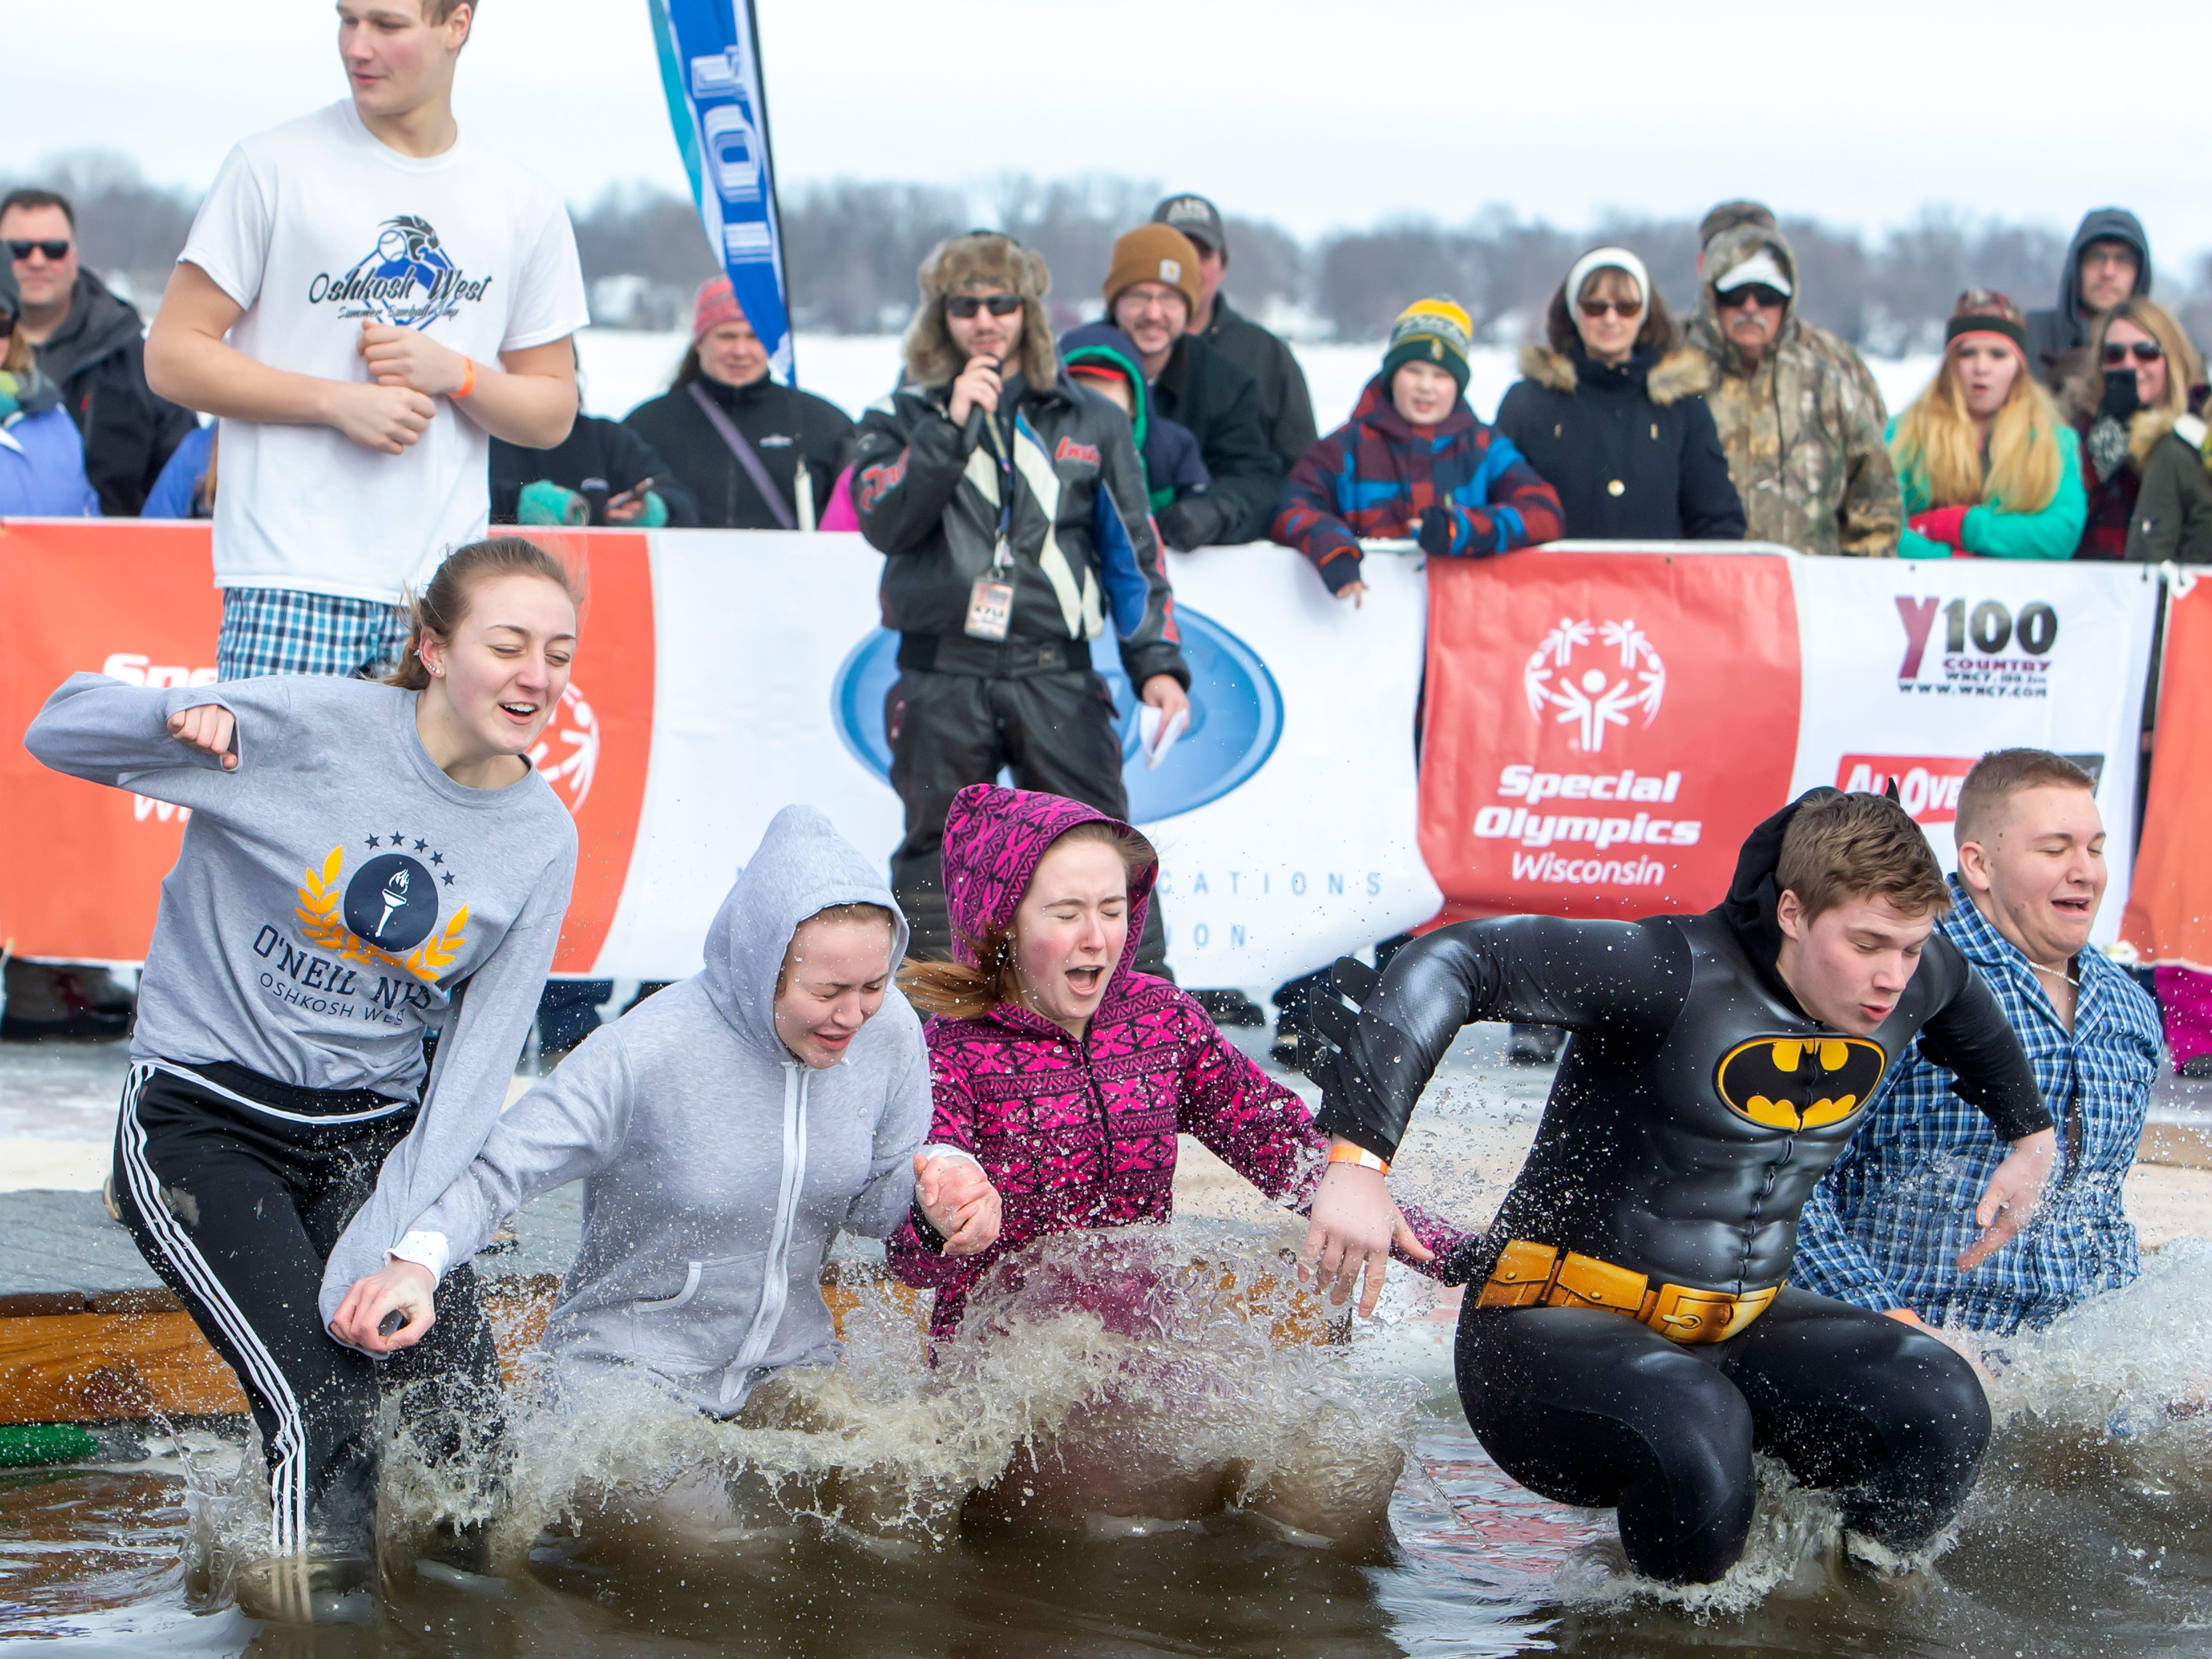 Oshkosh West High School students make the jump during the Special Olympics Wisconsin Polar Plunge in Oshkosh, Wis., on Saturday, February 16, 2019, at Miller's Bay in Menominee Park.